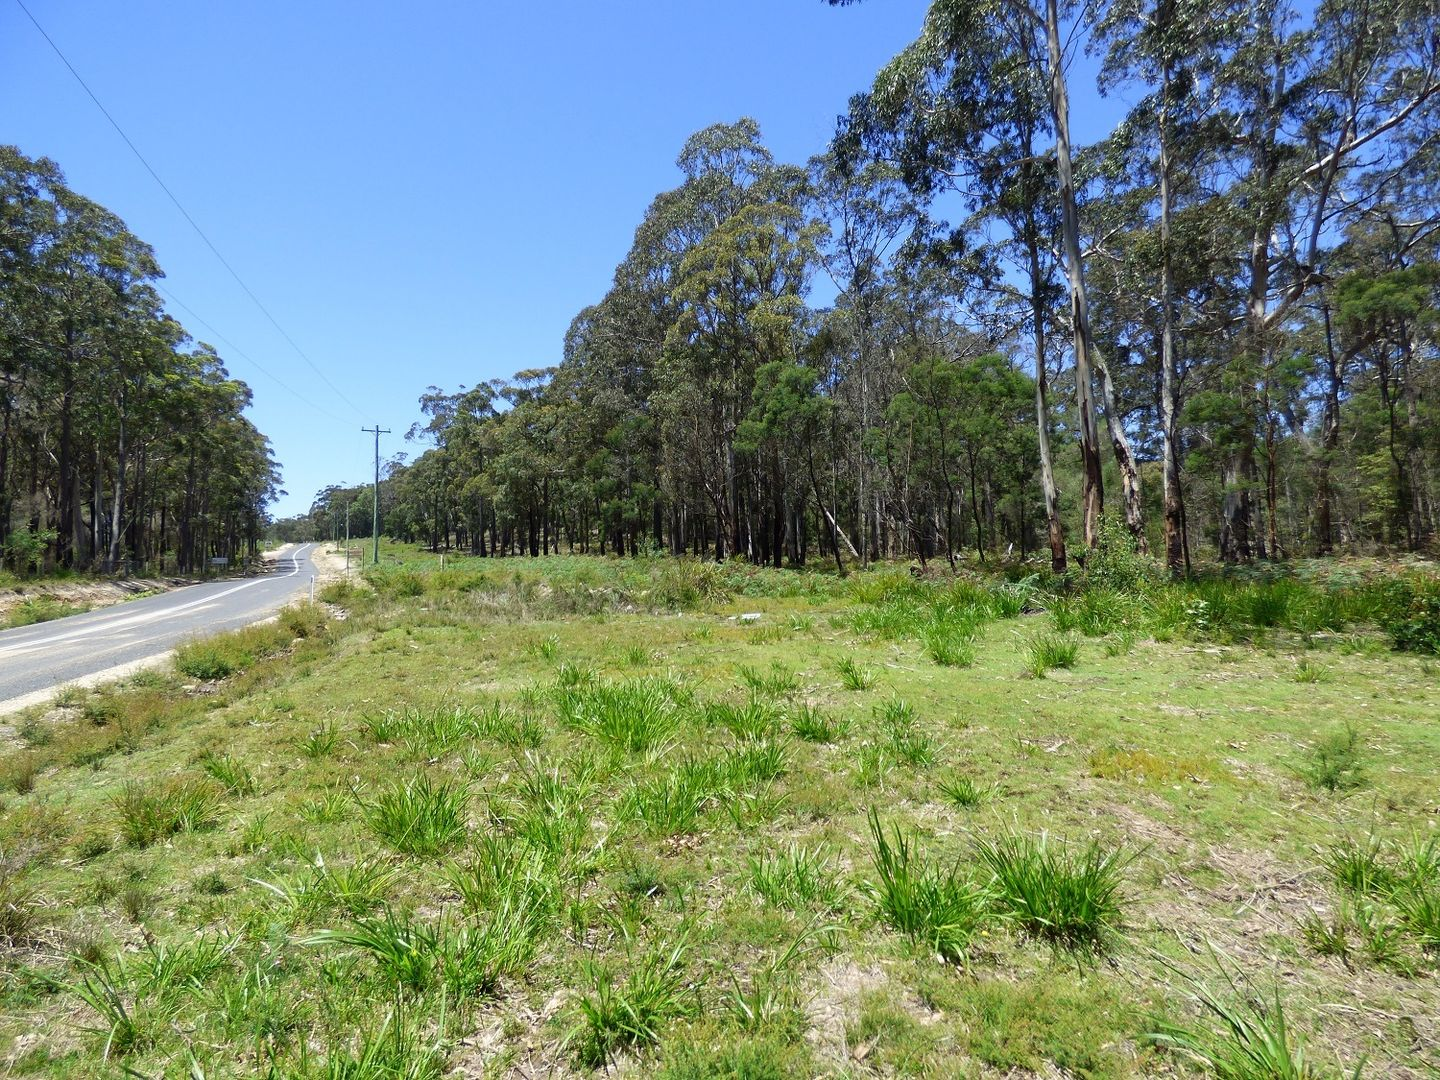 LOT A Gleeson Road Wonboyn Via, Eden NSW 2551, Image 2